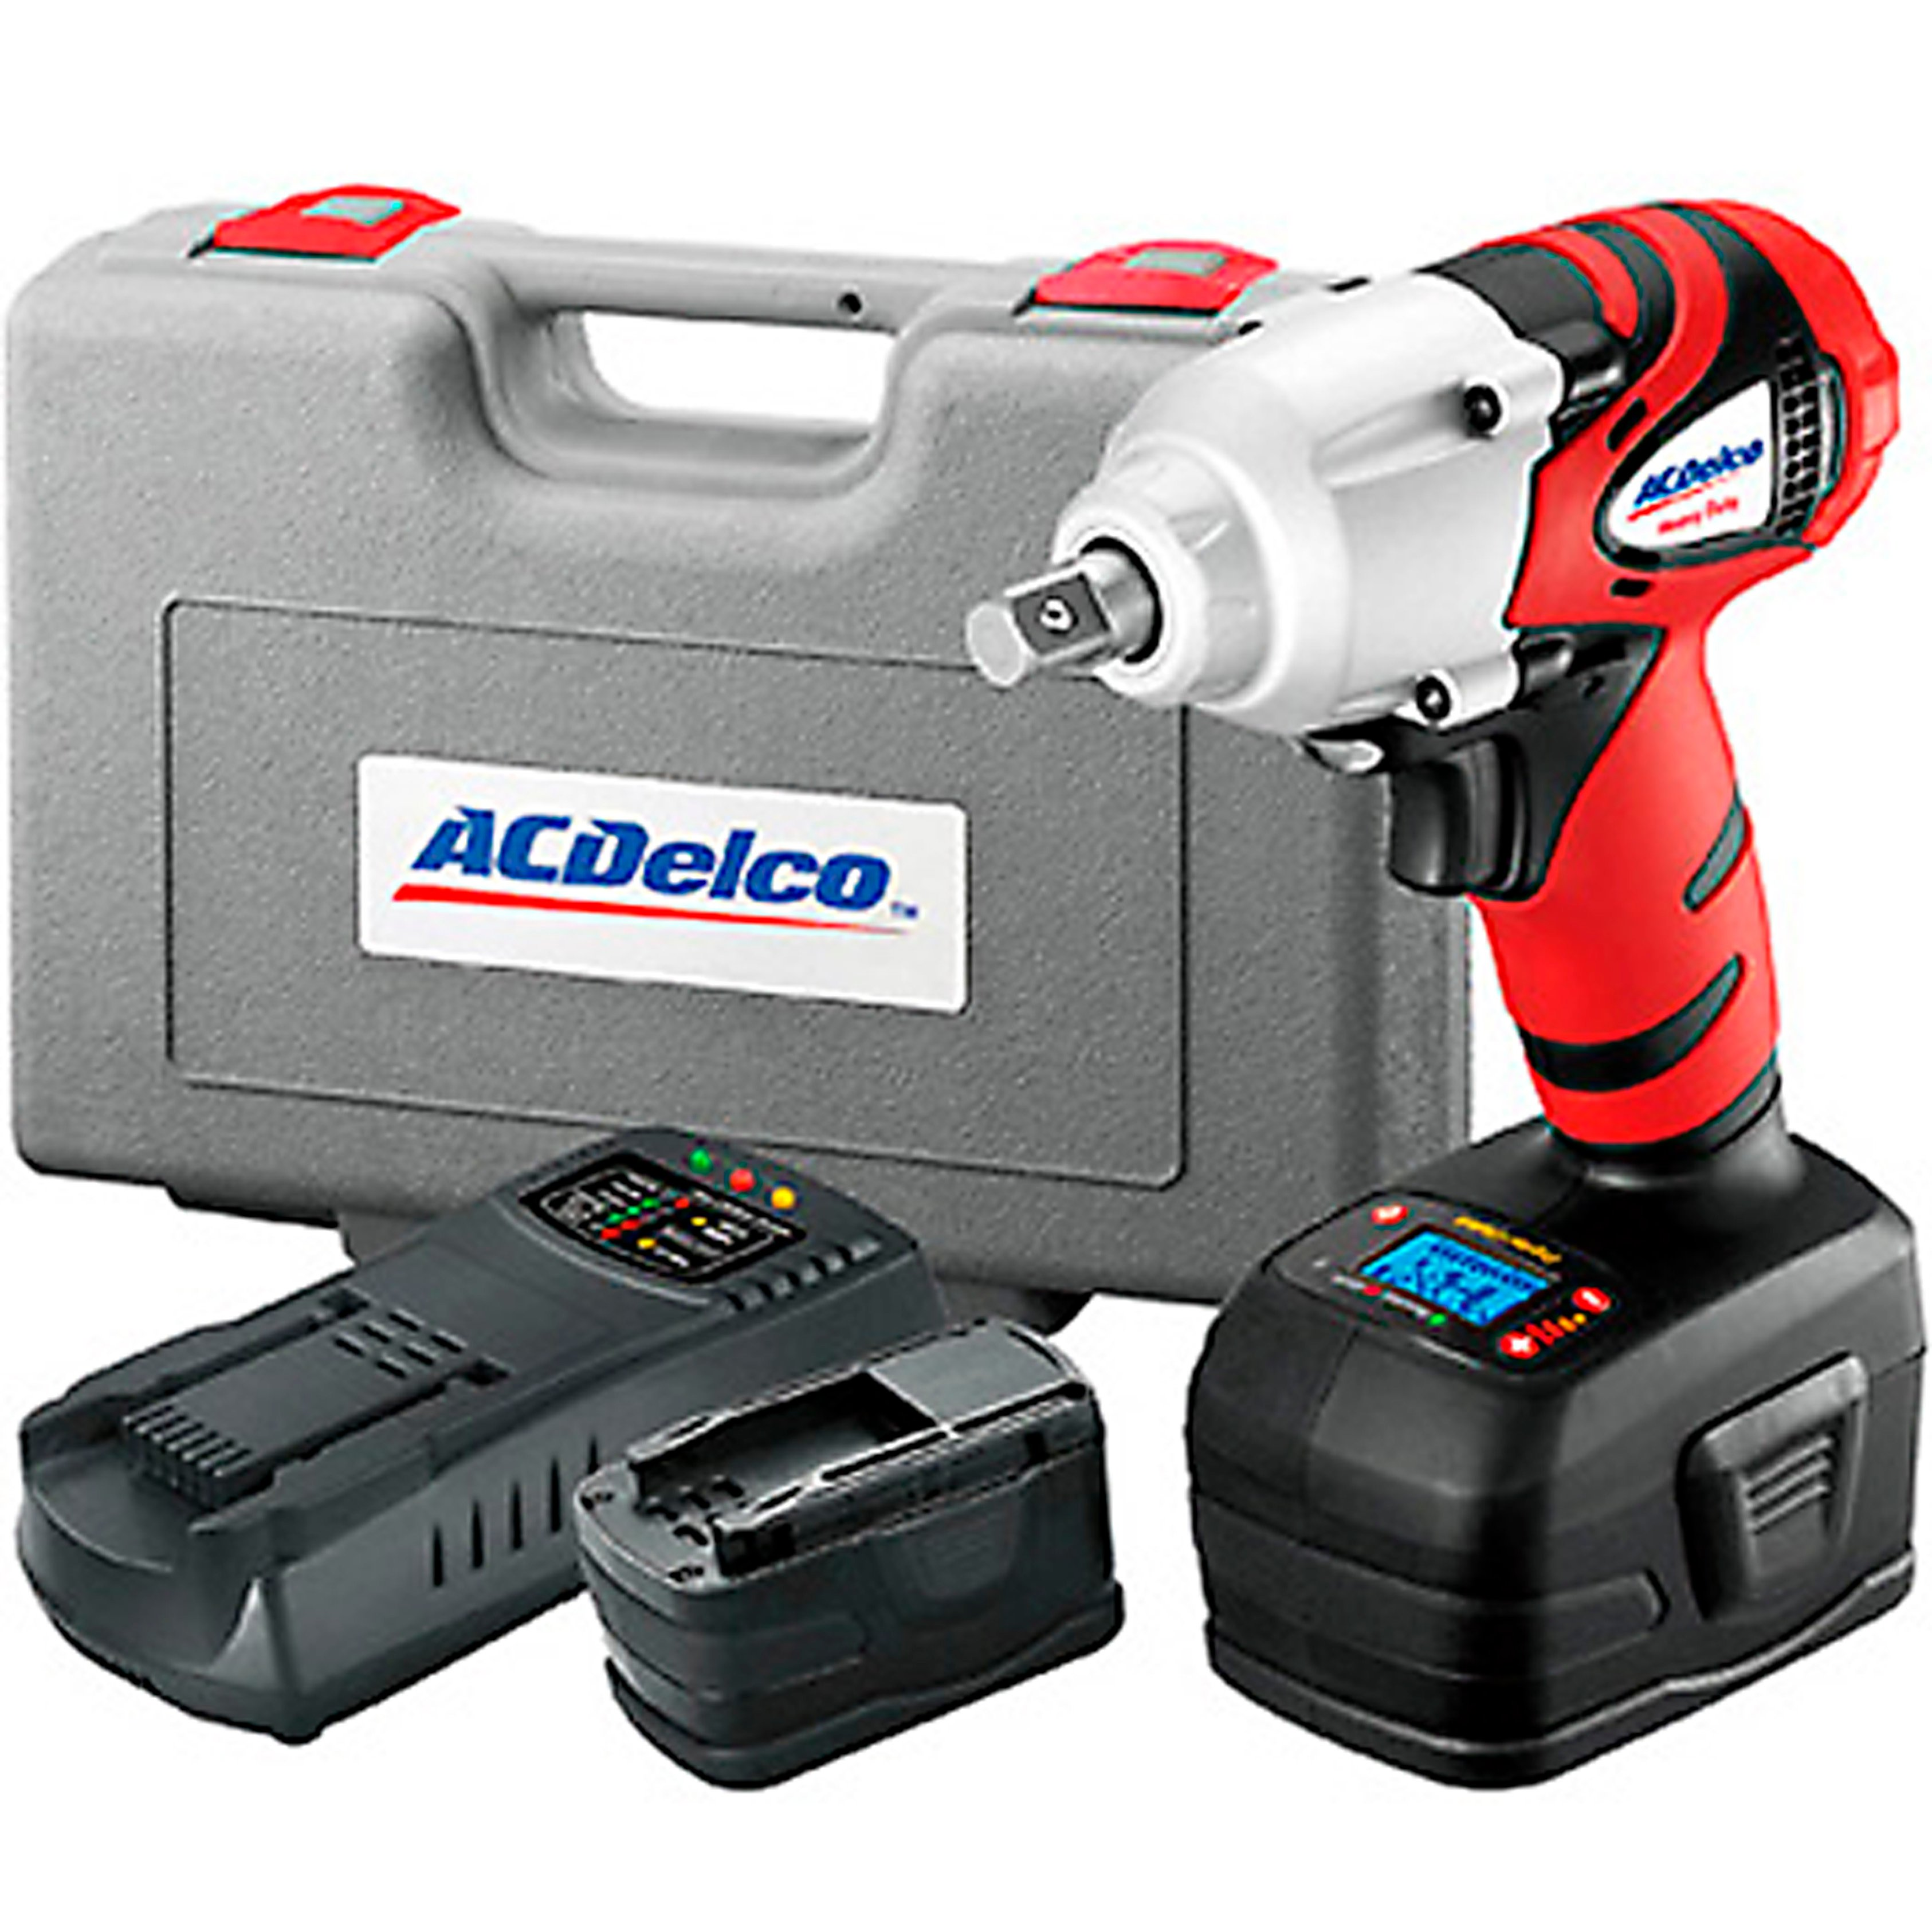 ACDelco Adds Impact Wrench